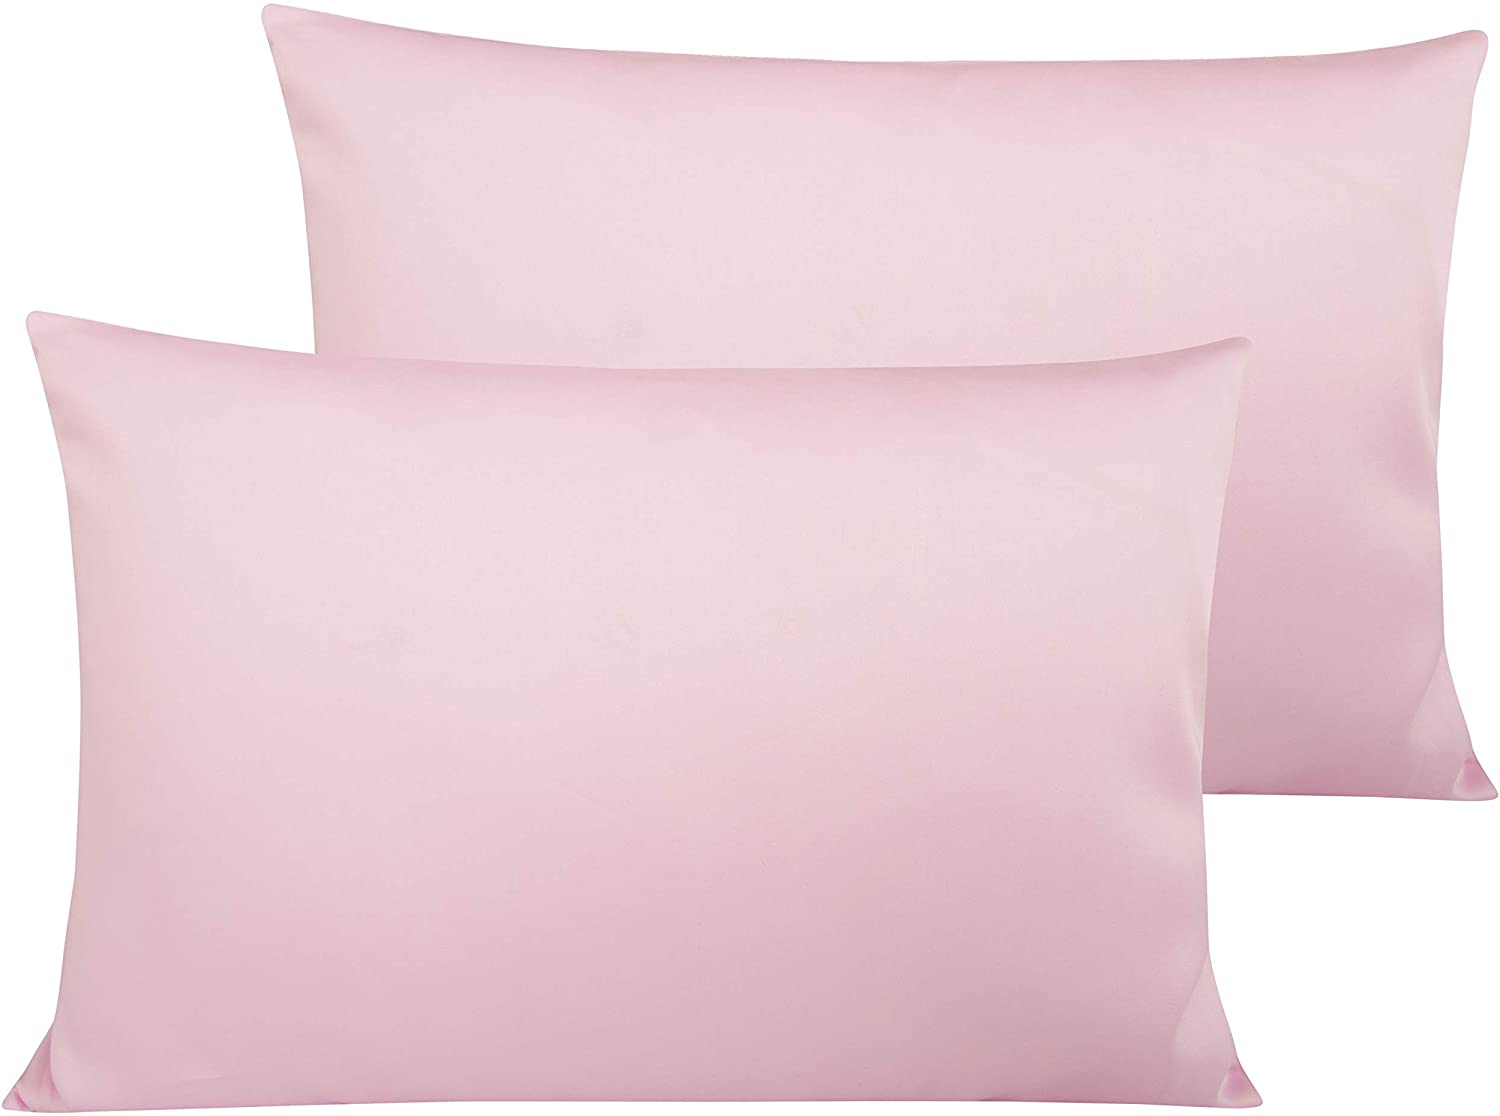 NTBAY 500 Thread Count Cotton Toddler Pillowcases, 2 Pack Travel Pillow Cases, 13 x 18 Inches, Pink